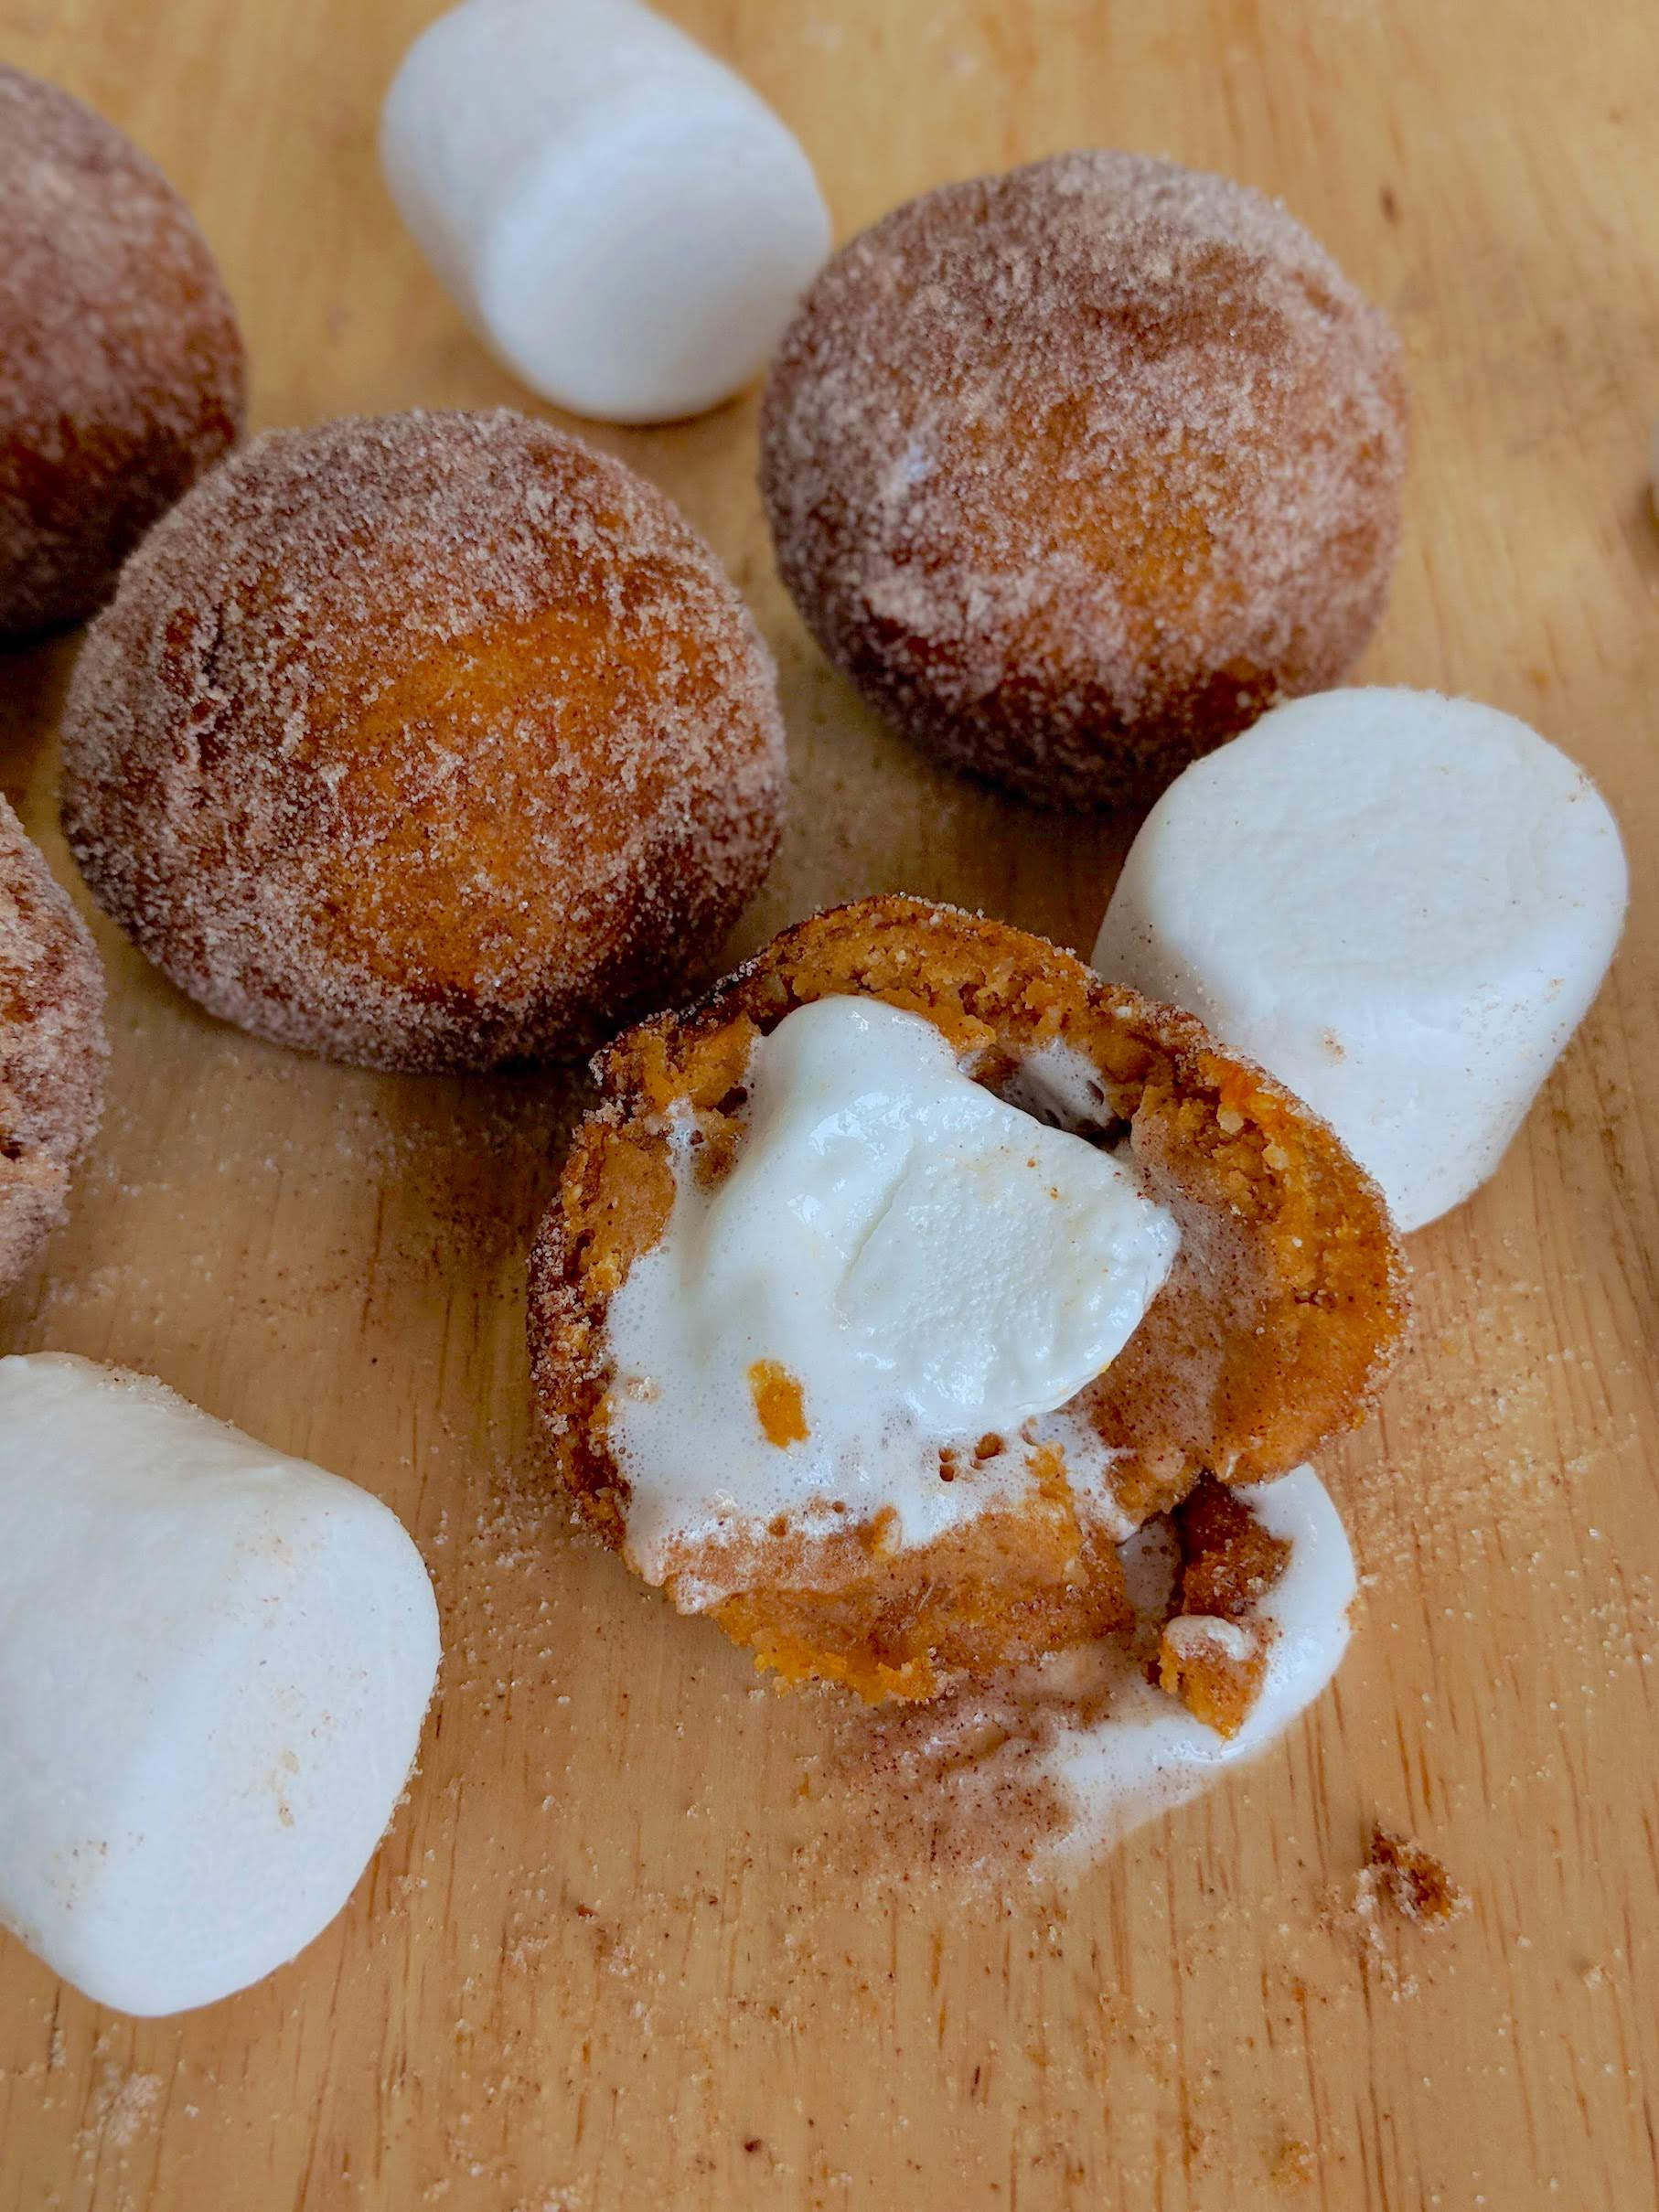 a close up of a sweet potato donut hole stuffed with a marshmallow